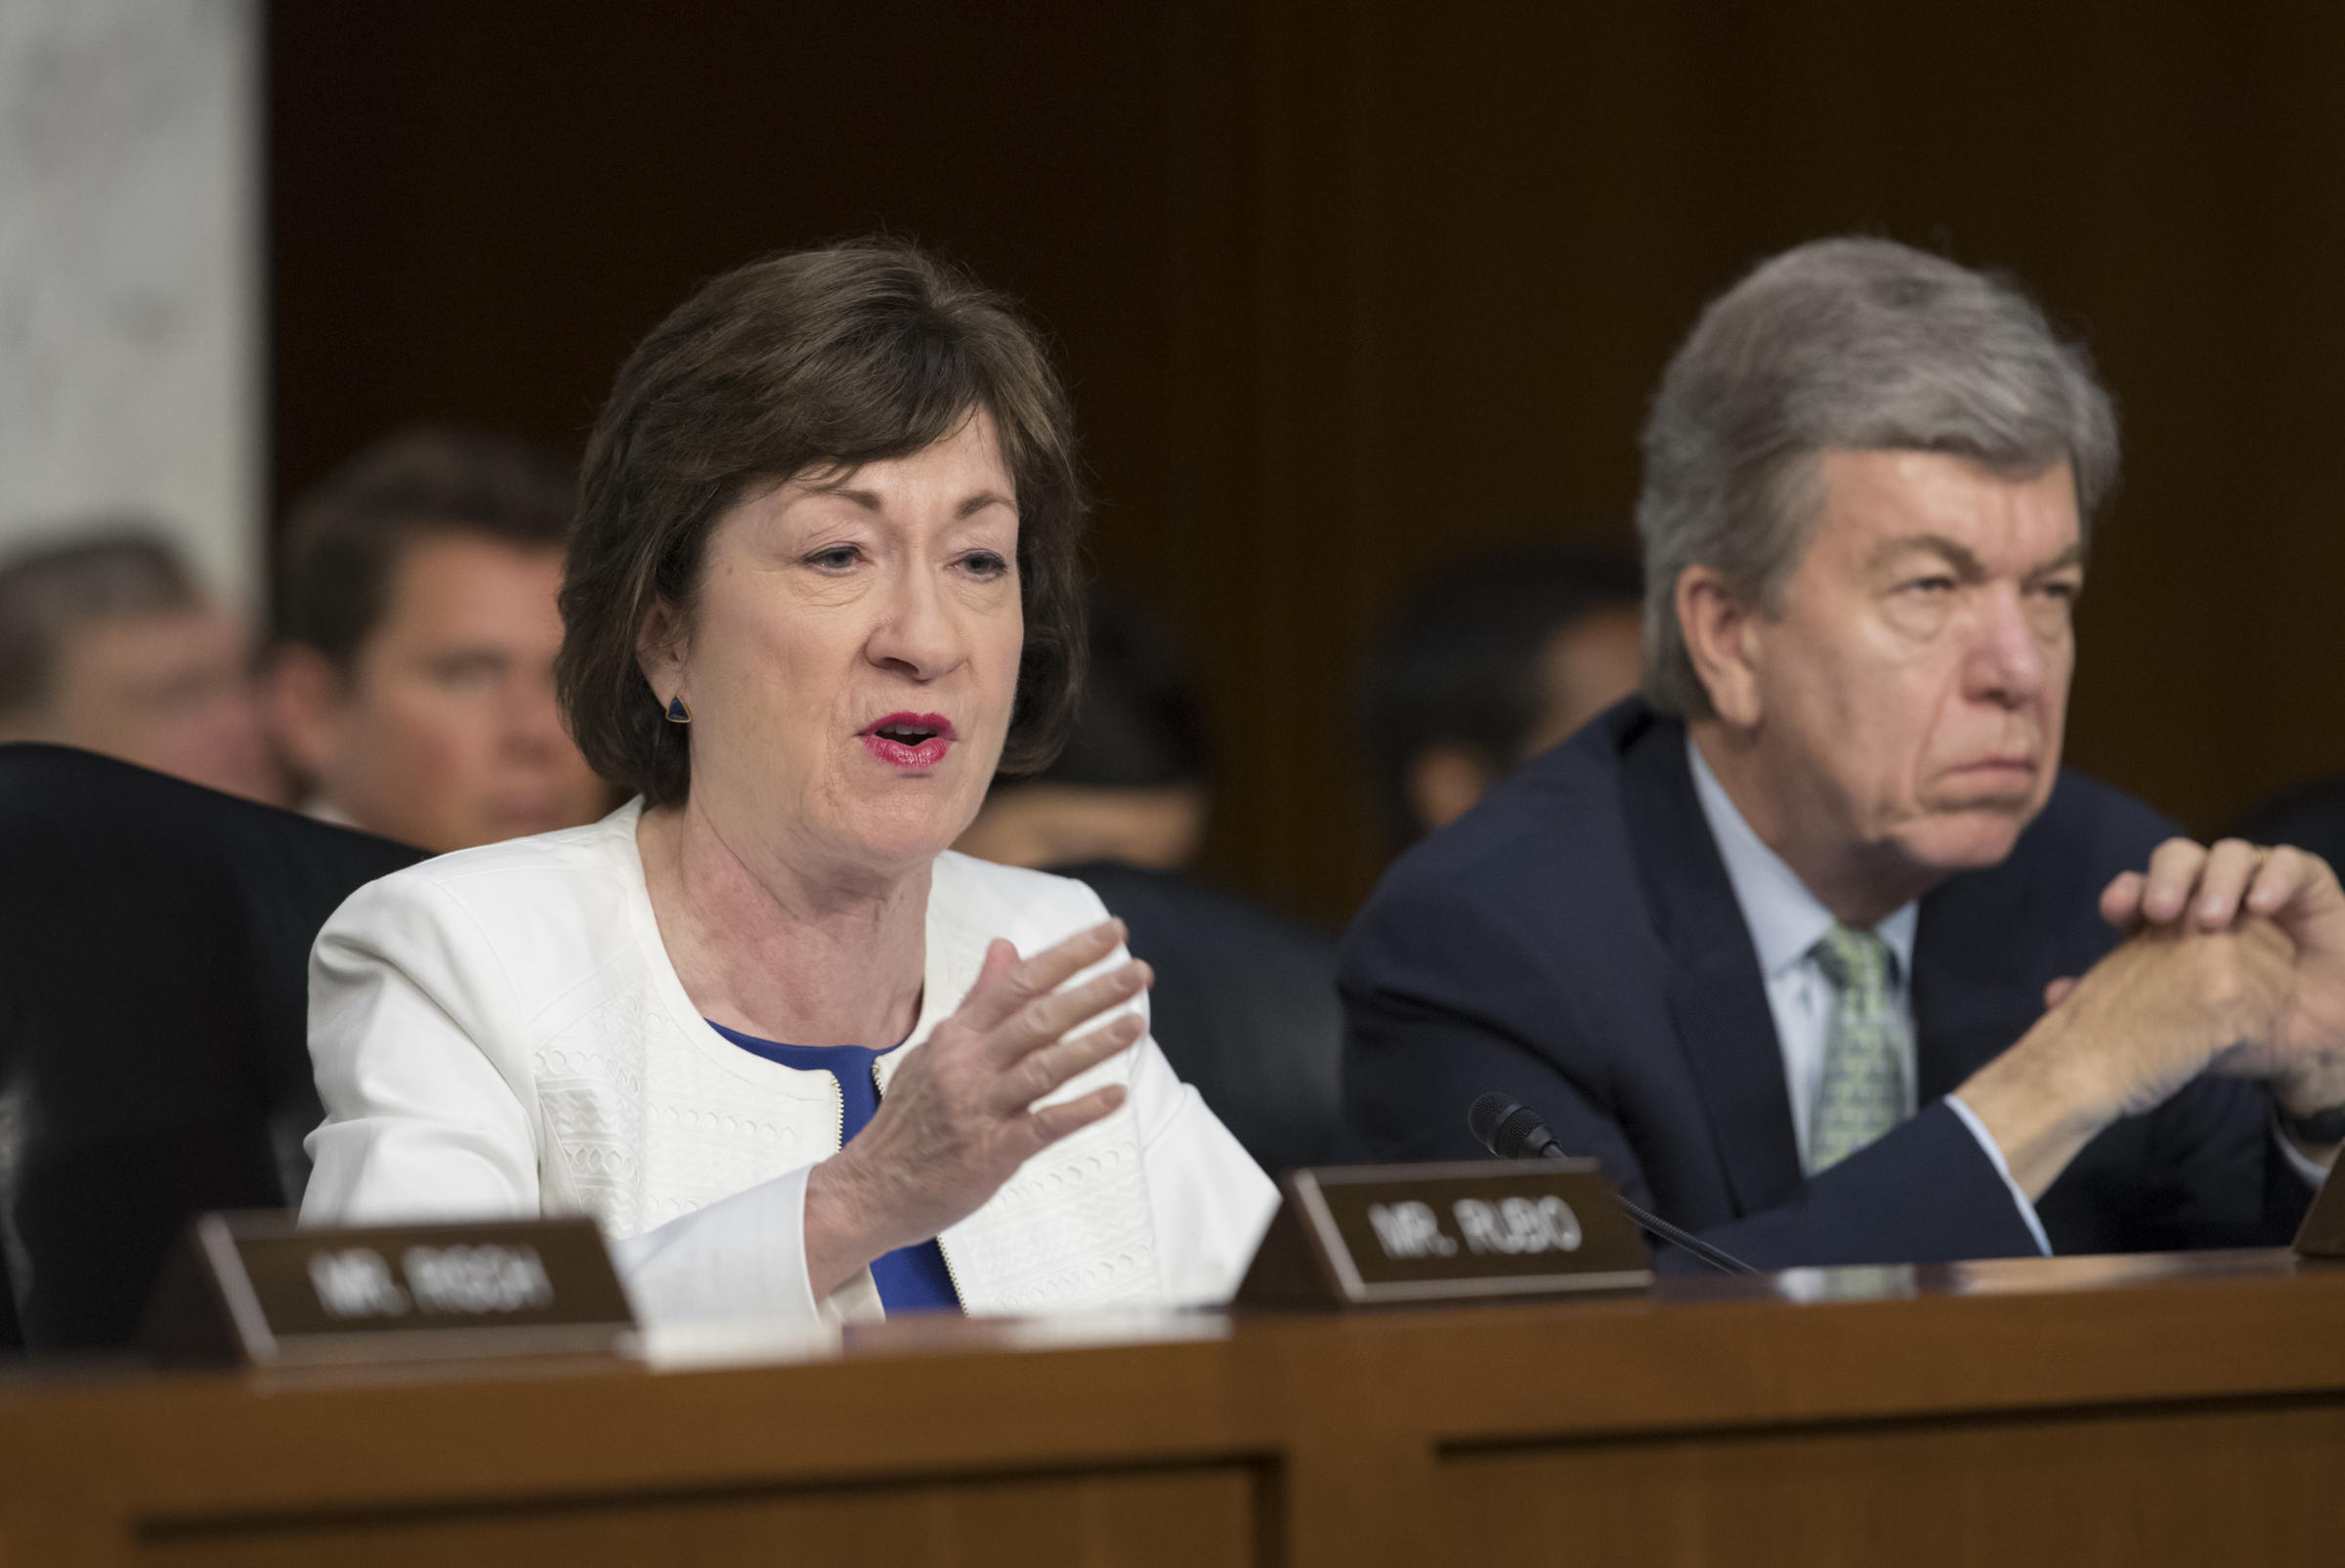 Democrats furious at evasive answers at hearing